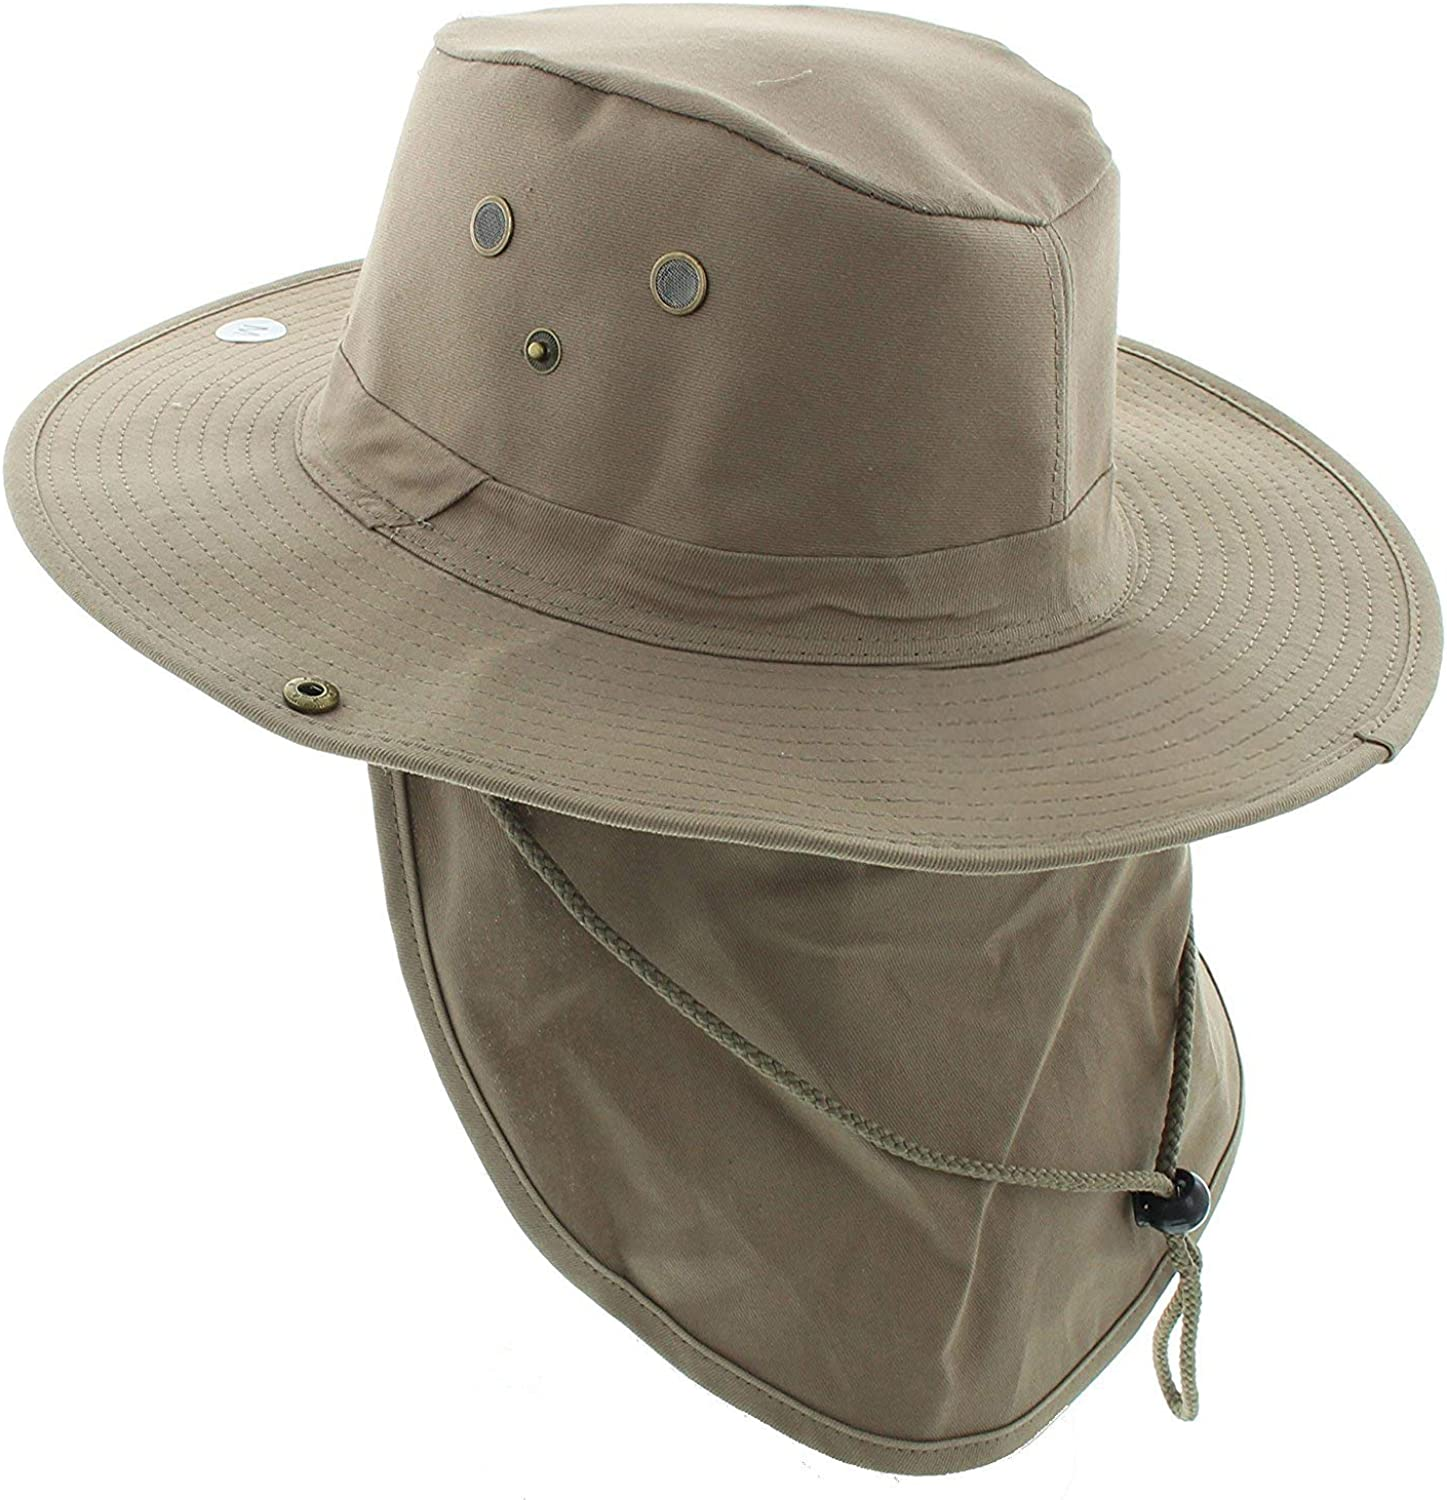 Enimay Outdoor Sun Protection Wide Brim Hiking Fishing Snap Brim Hat with Neck Flap